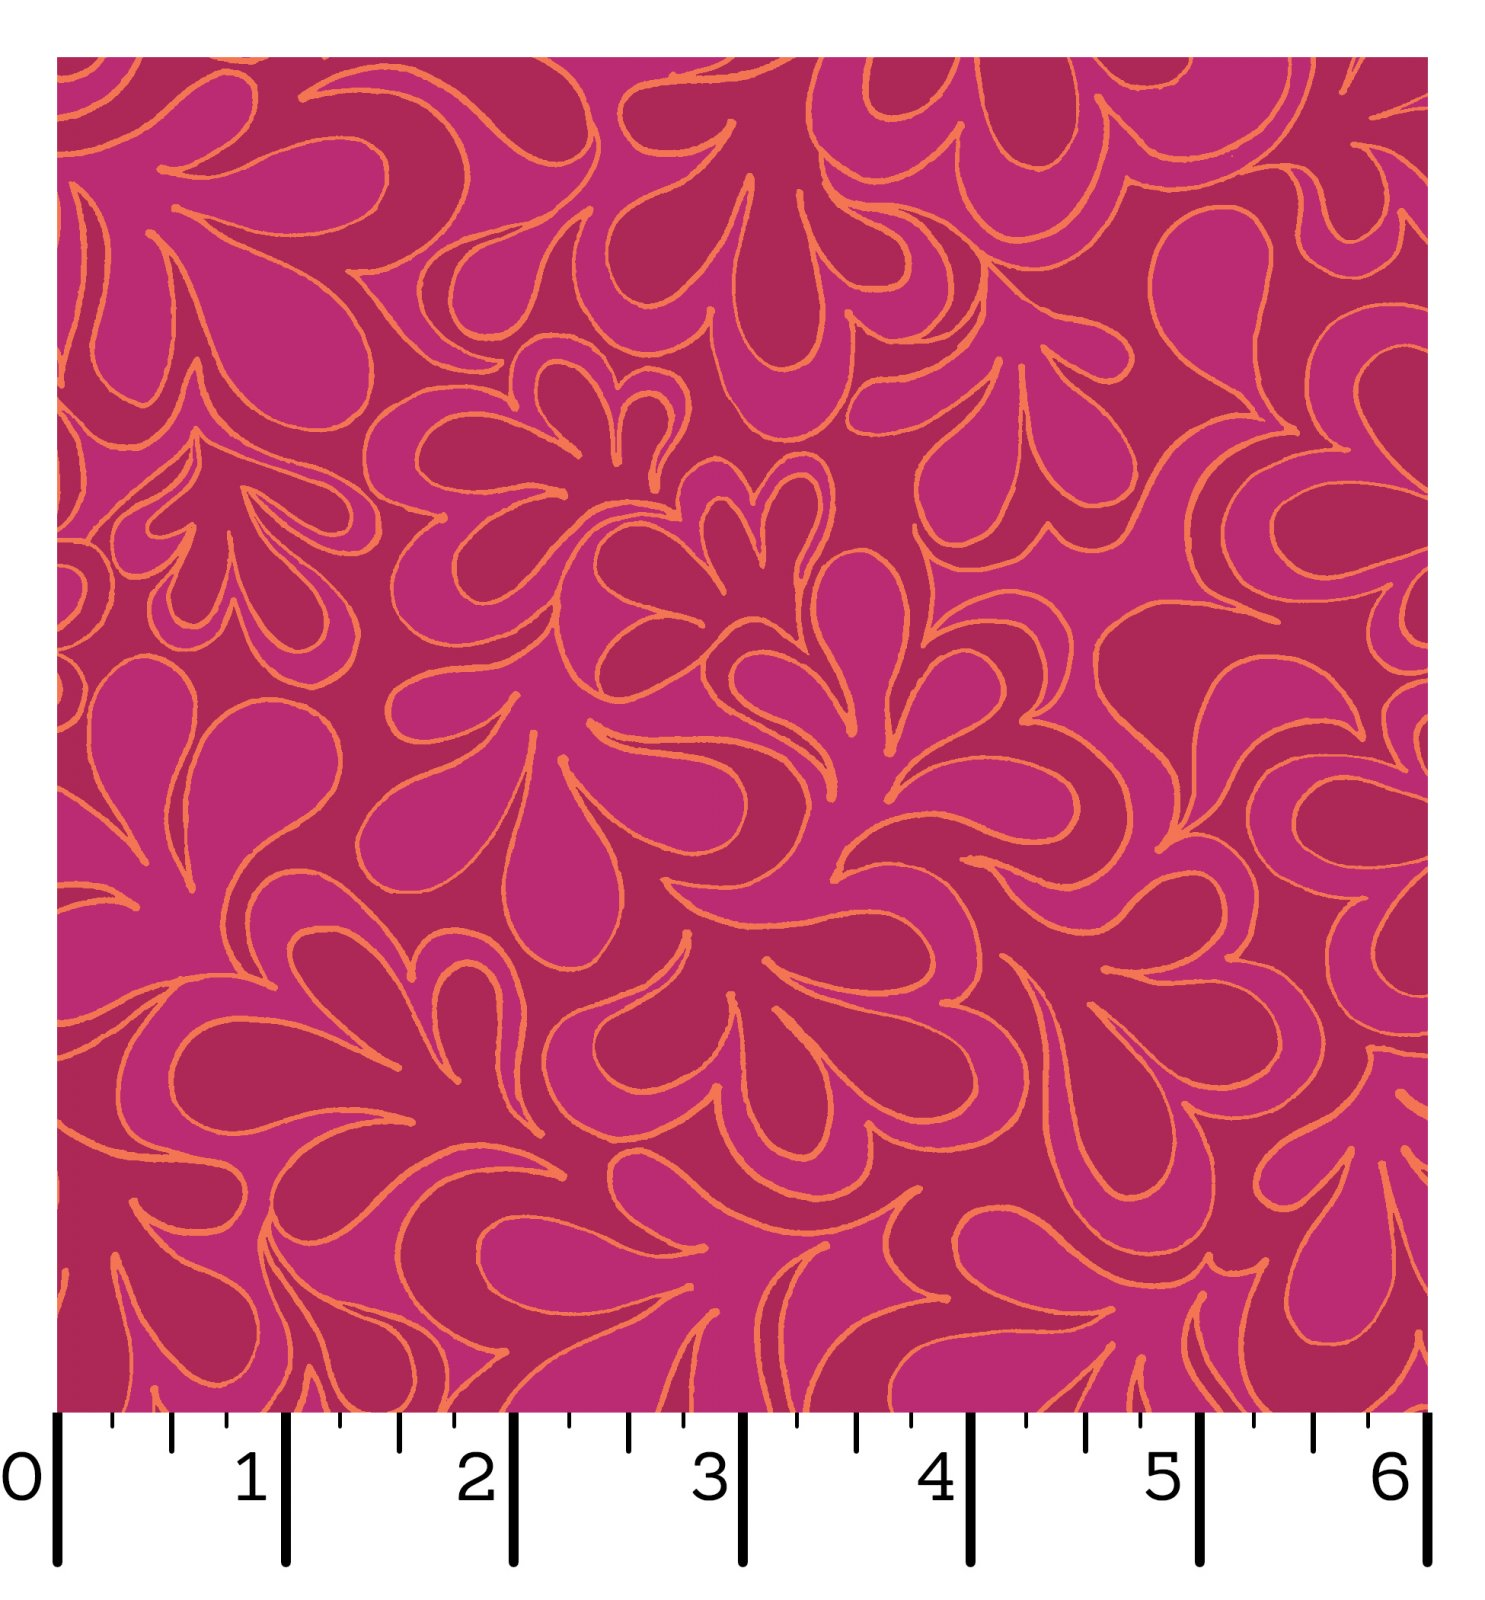 EESC-QBD10172 P - 108 INFINITY BACKINGS BY CHRISTINA CAMELI SUCCULENT MAGENTA - ARRIVING IN MARCH 2022